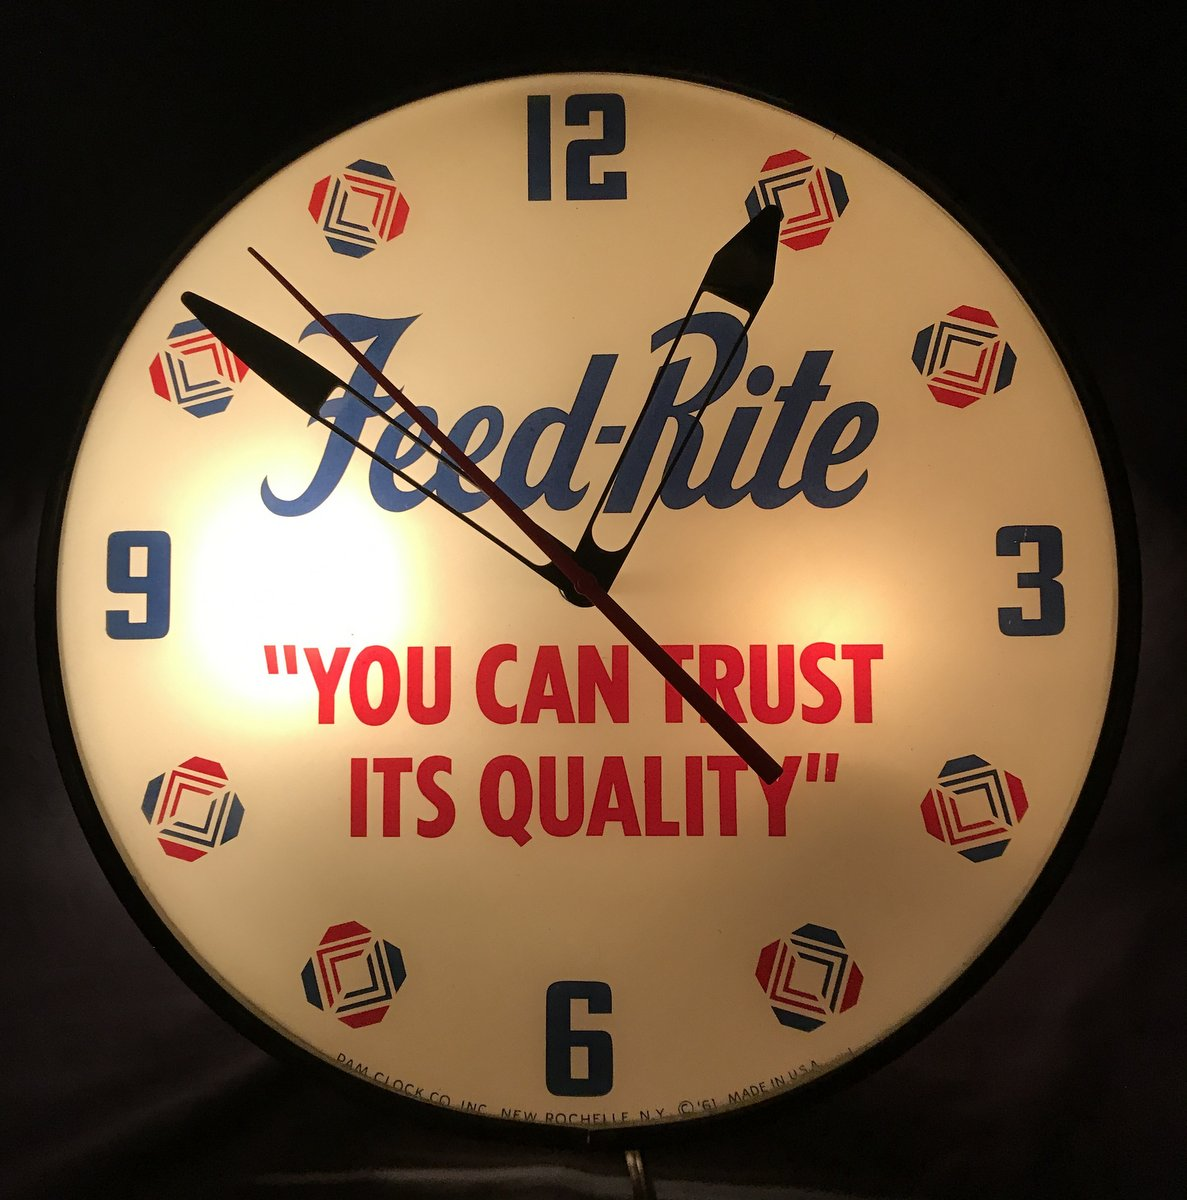 Feed-Rite Advertising Clock